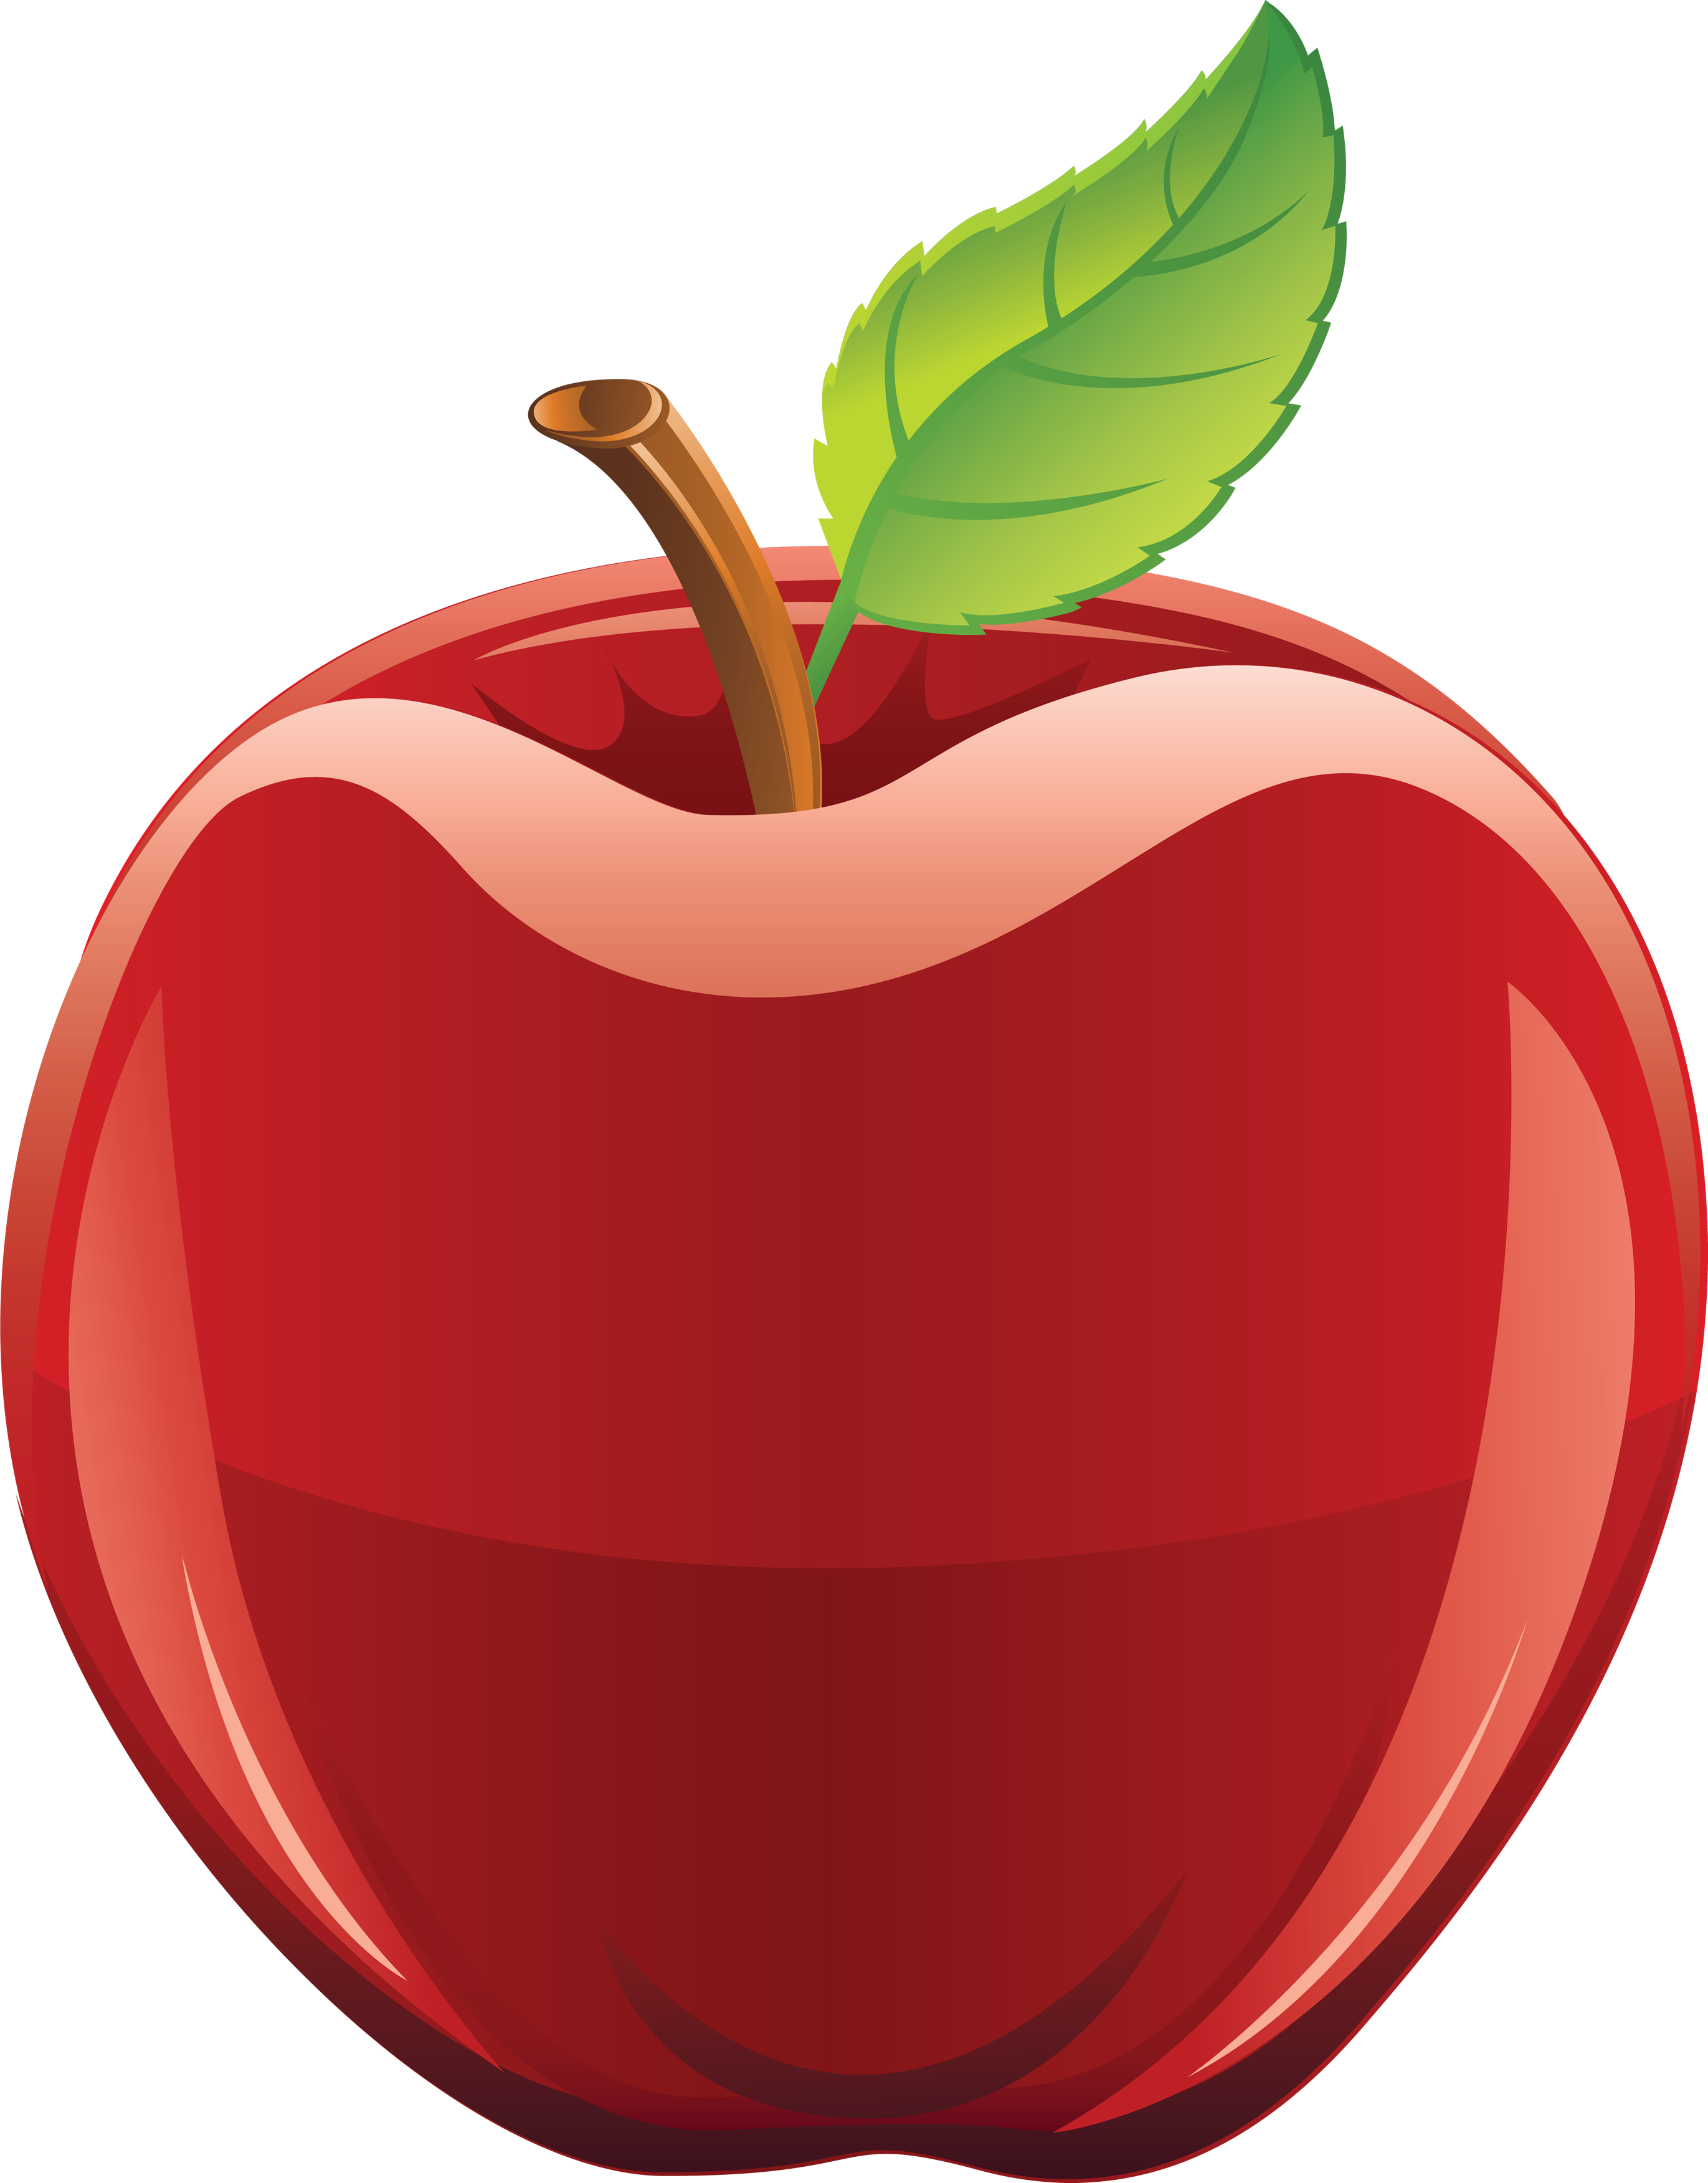 apple clipart transparent background - Clipground